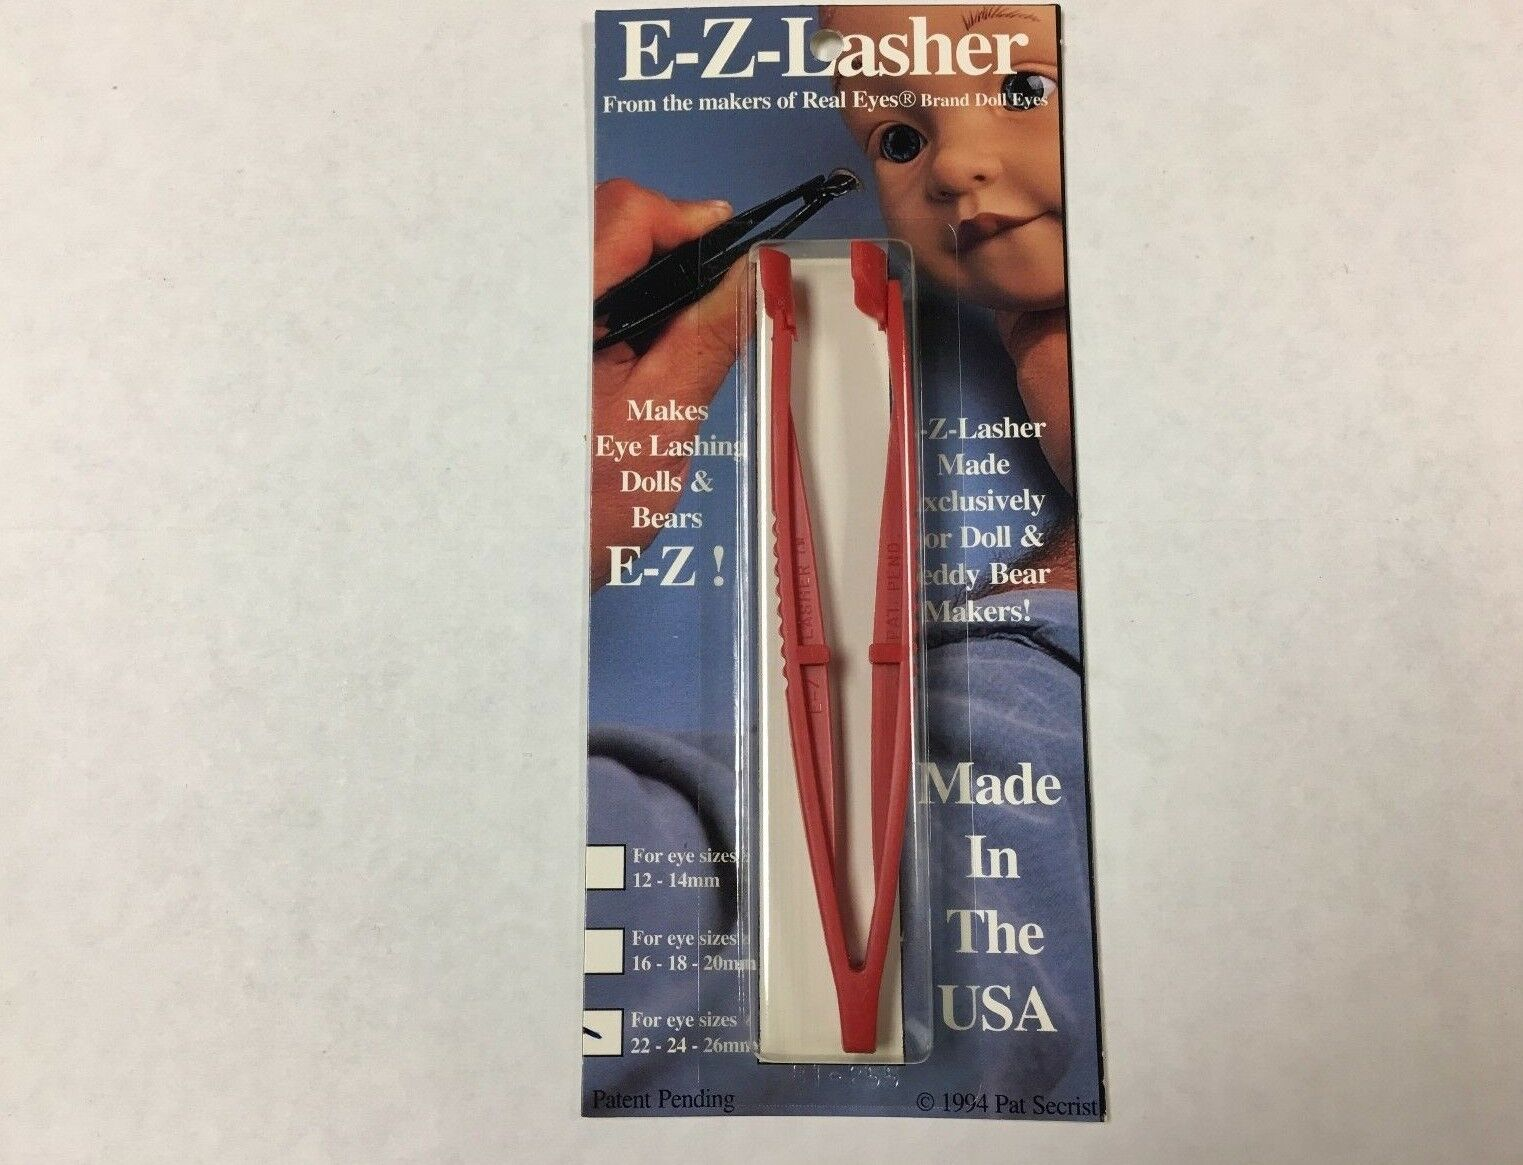 E-Z-Lasher tool for fitting small doll or teddy bear eyelashes